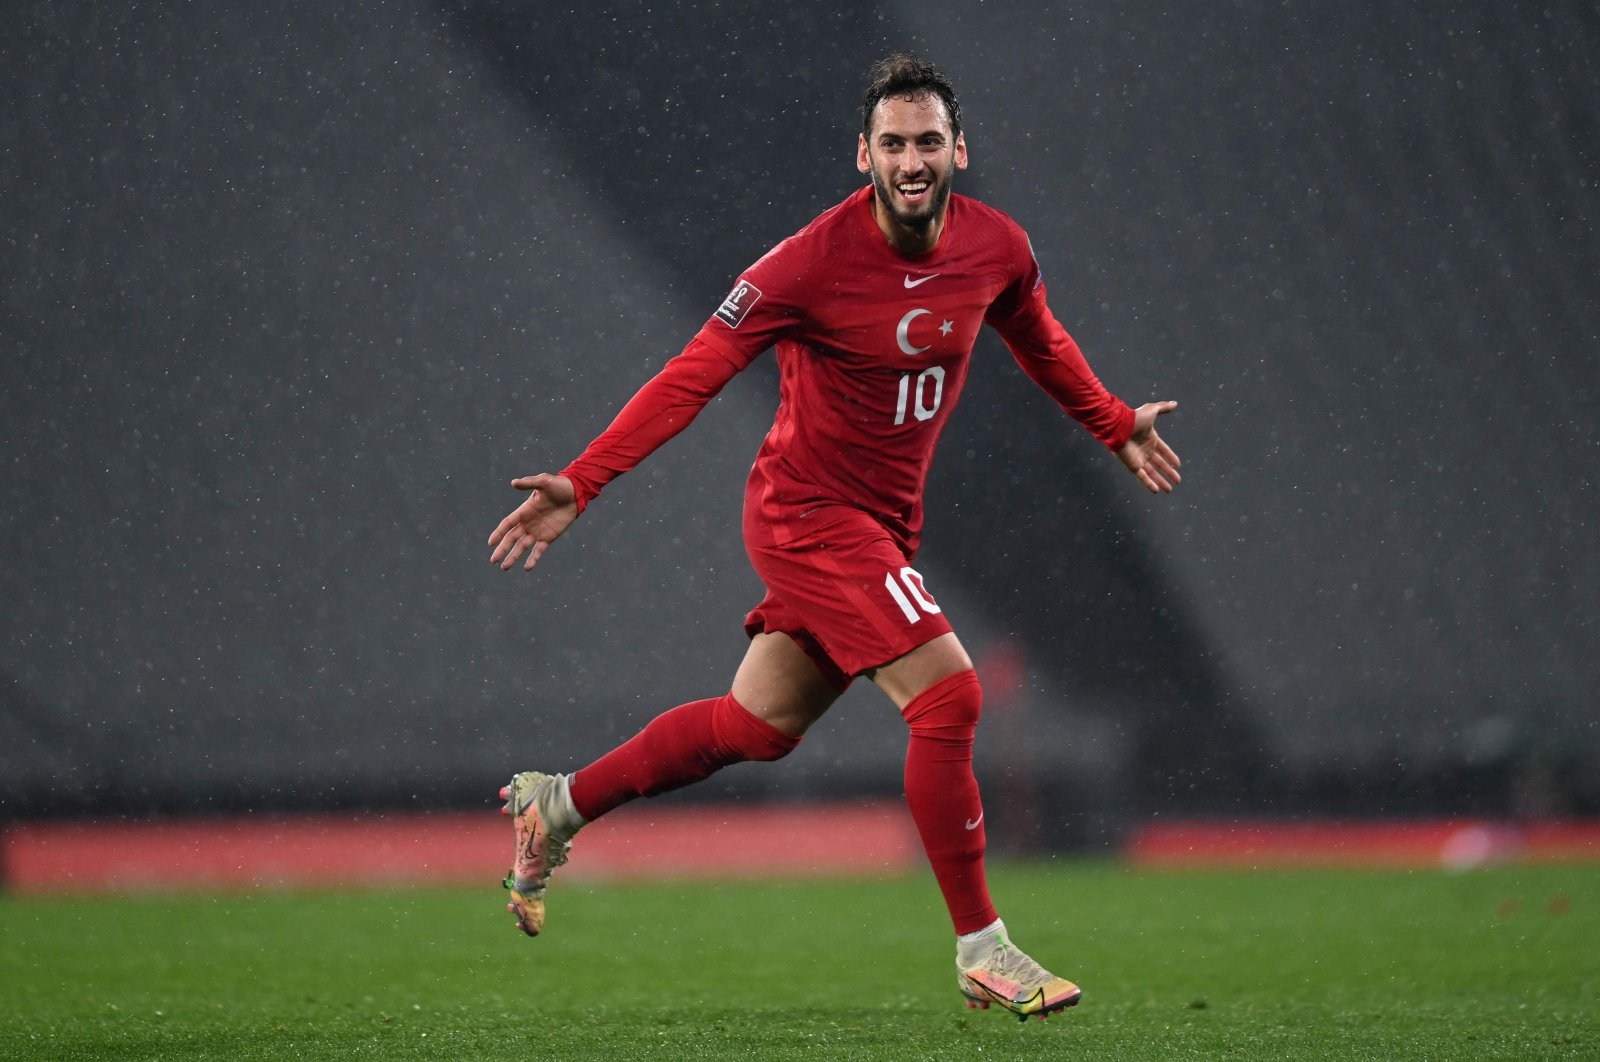 Turkey's Hakan Çalhanoğlu celebrates scoring a goal during the FIFA World Cup Qatar 2022 qualification Group G match against Latvia at the Olympic Stadium, Istanbul, March 30, 2021. (AFP Photo)